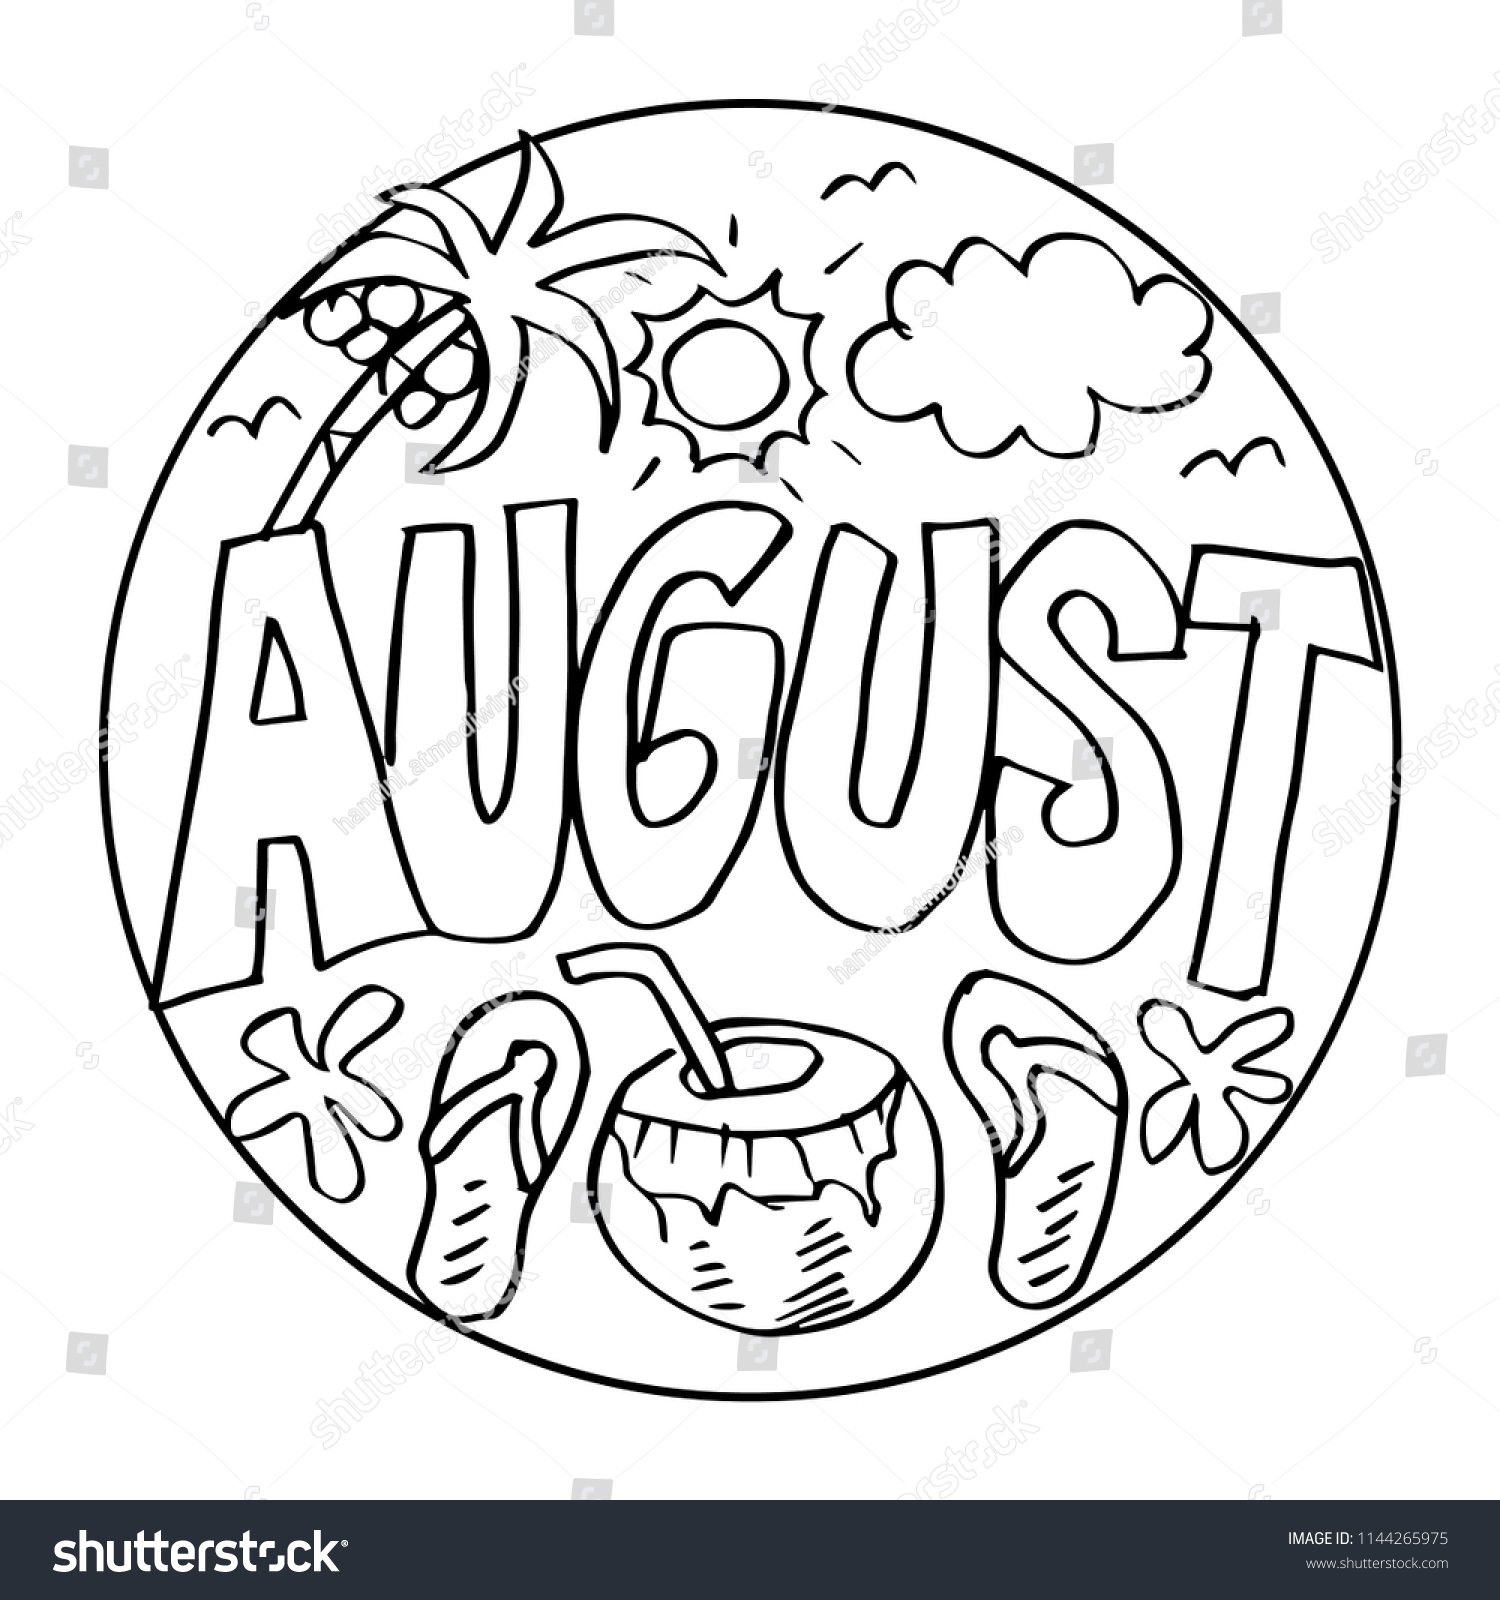 August Coloring Pages Kids Stock Image Download Now